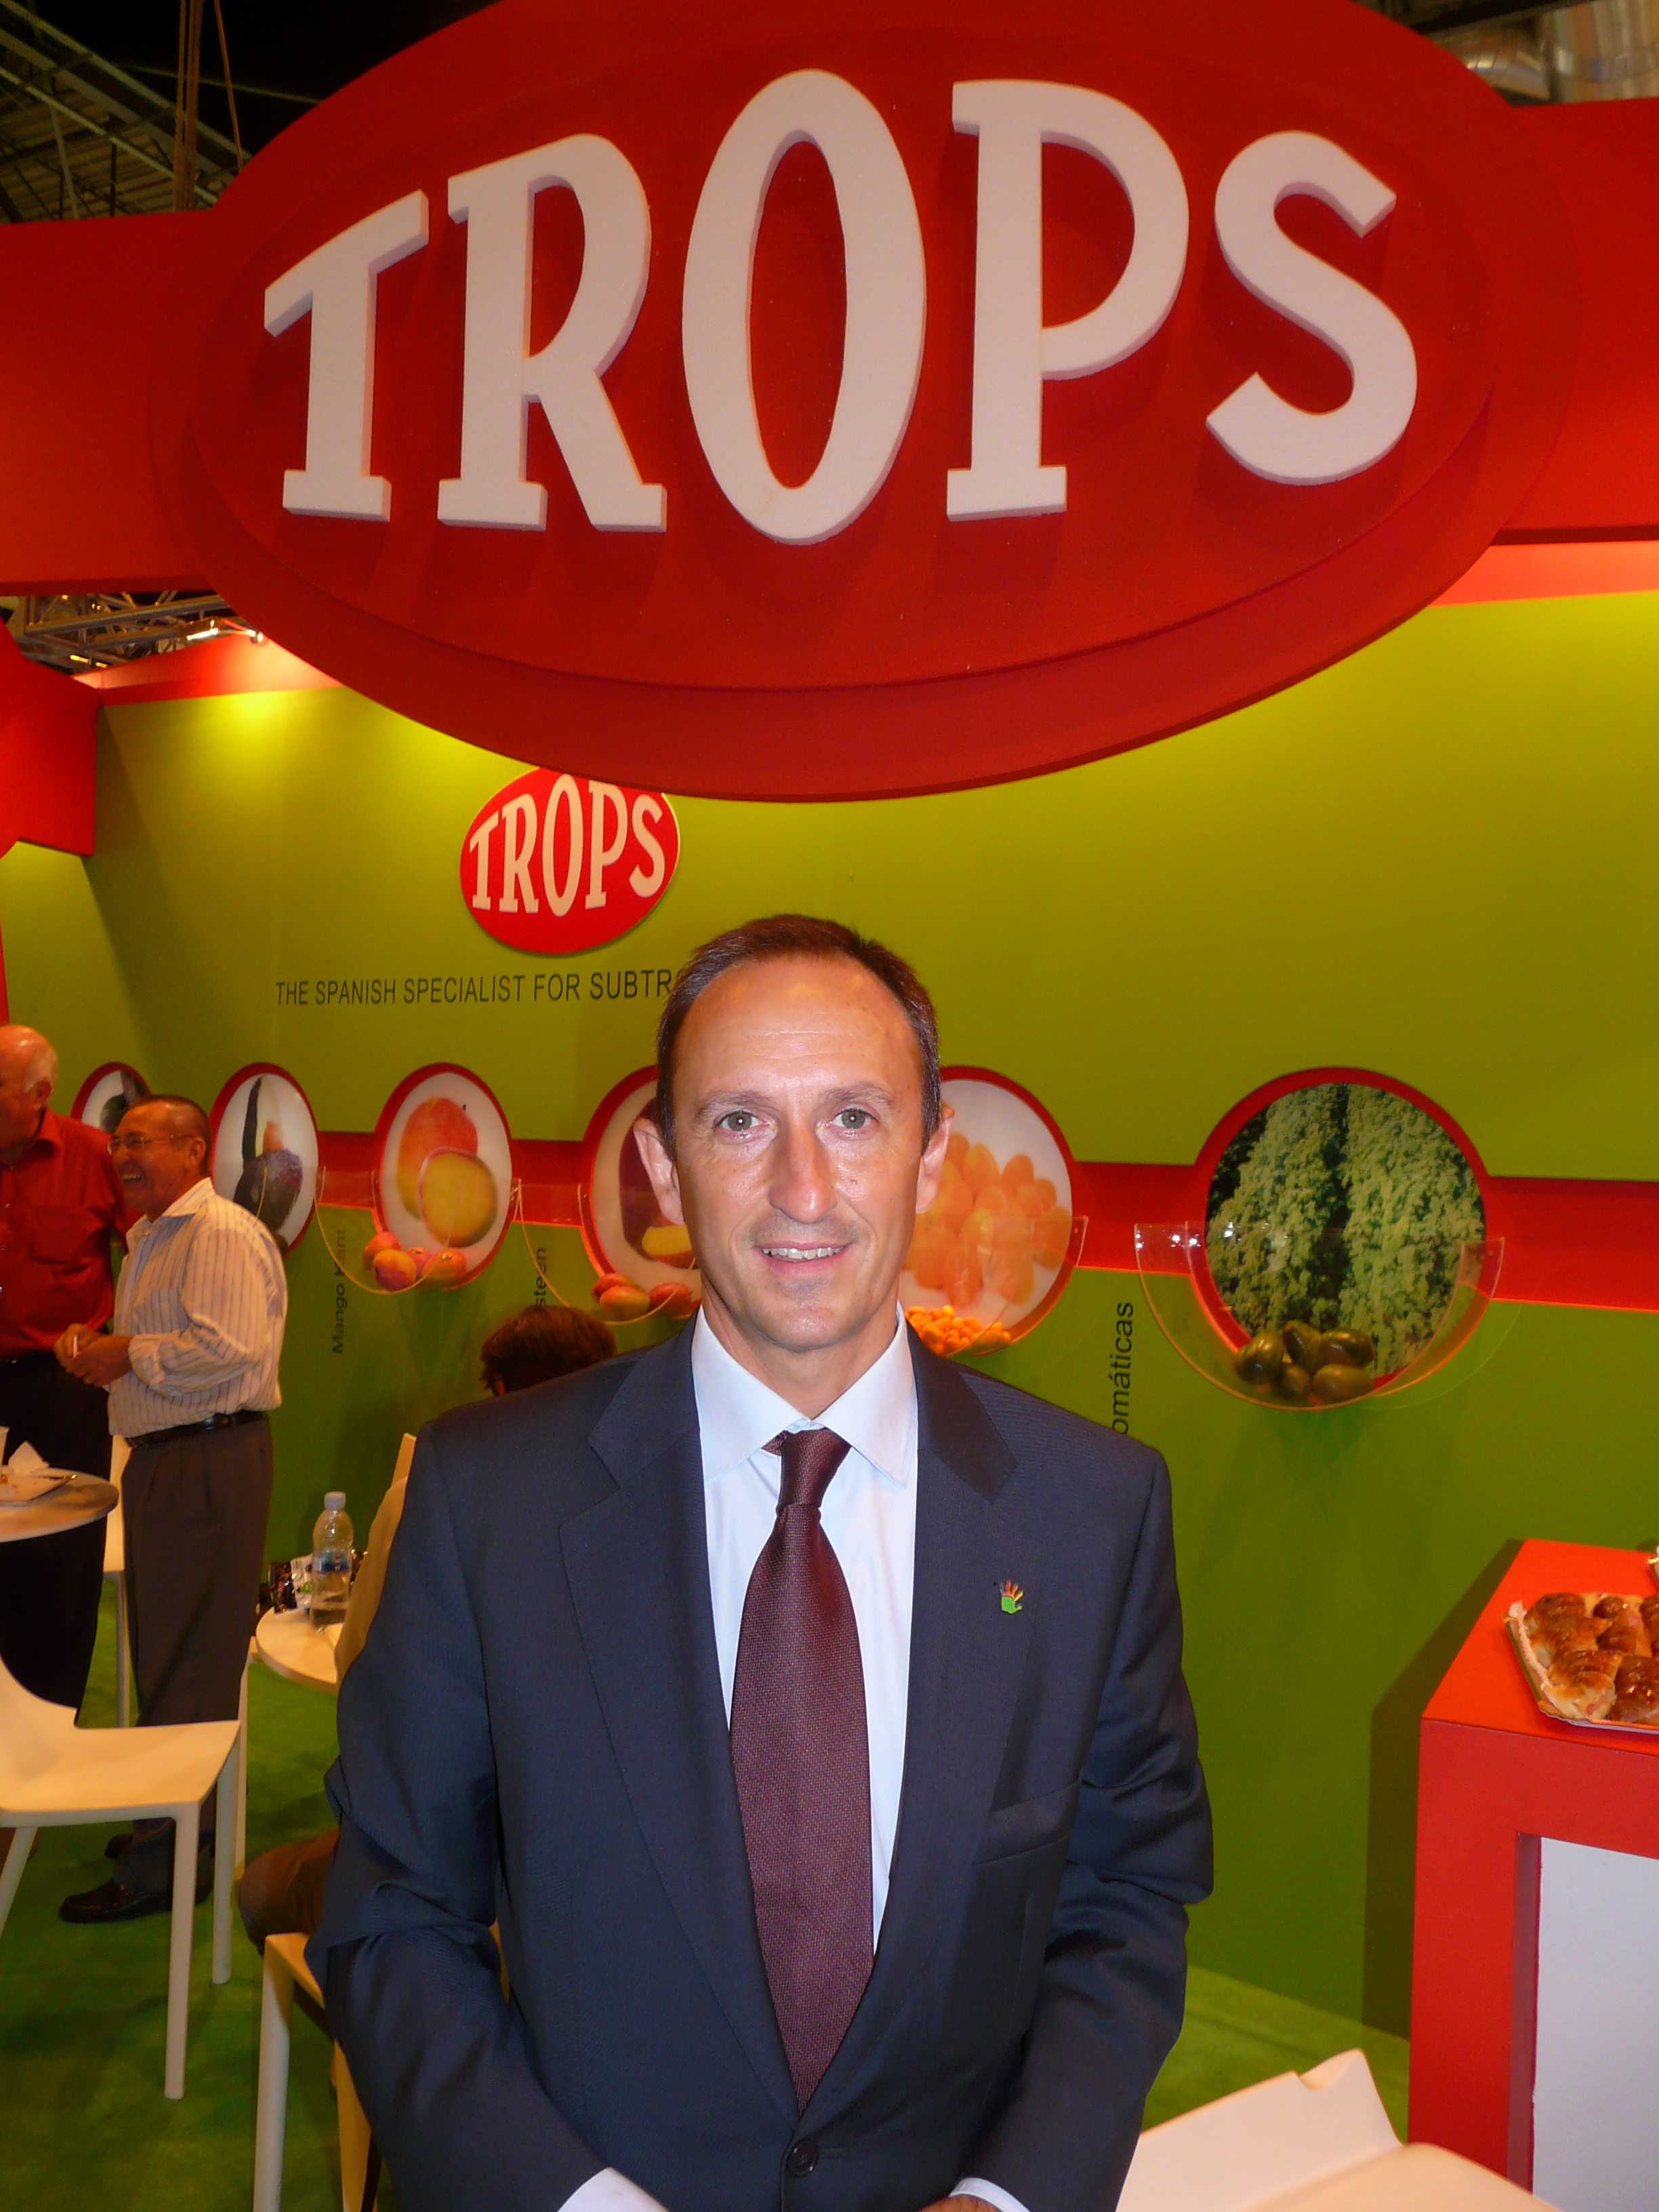 Enrique Colilles from Andalusian avocado and mango producer Trops